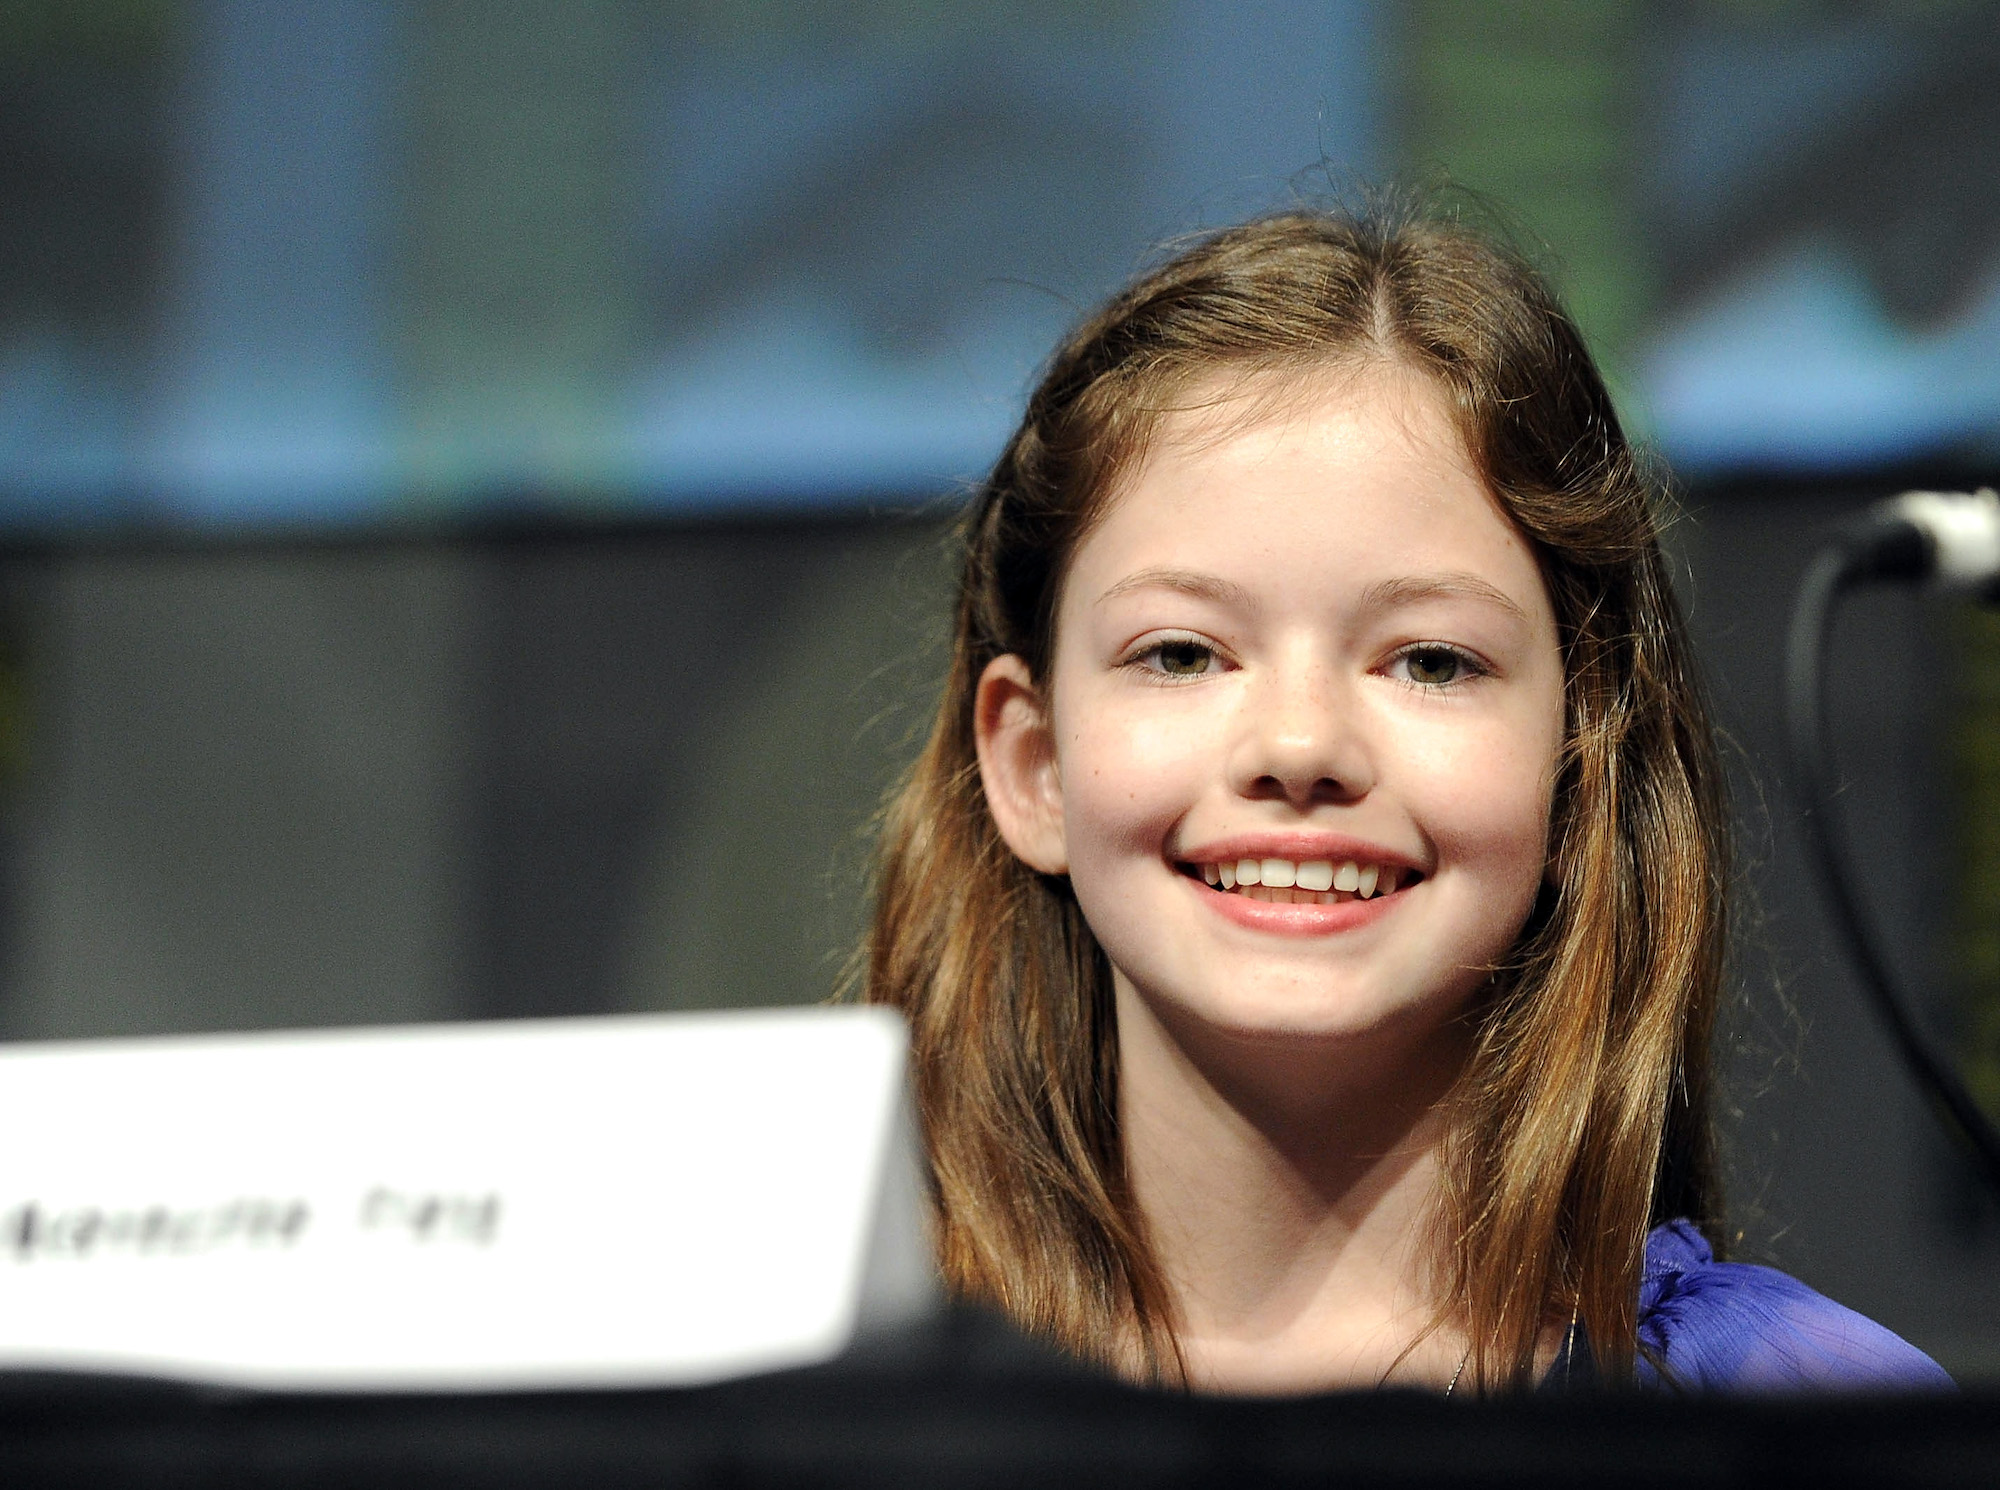 Mackenzie Foy at the 'The Twilight Saga: Breaking Dawn - Part 2' panel during San Diego Comic-Con International 2012 on July 12, 2012.